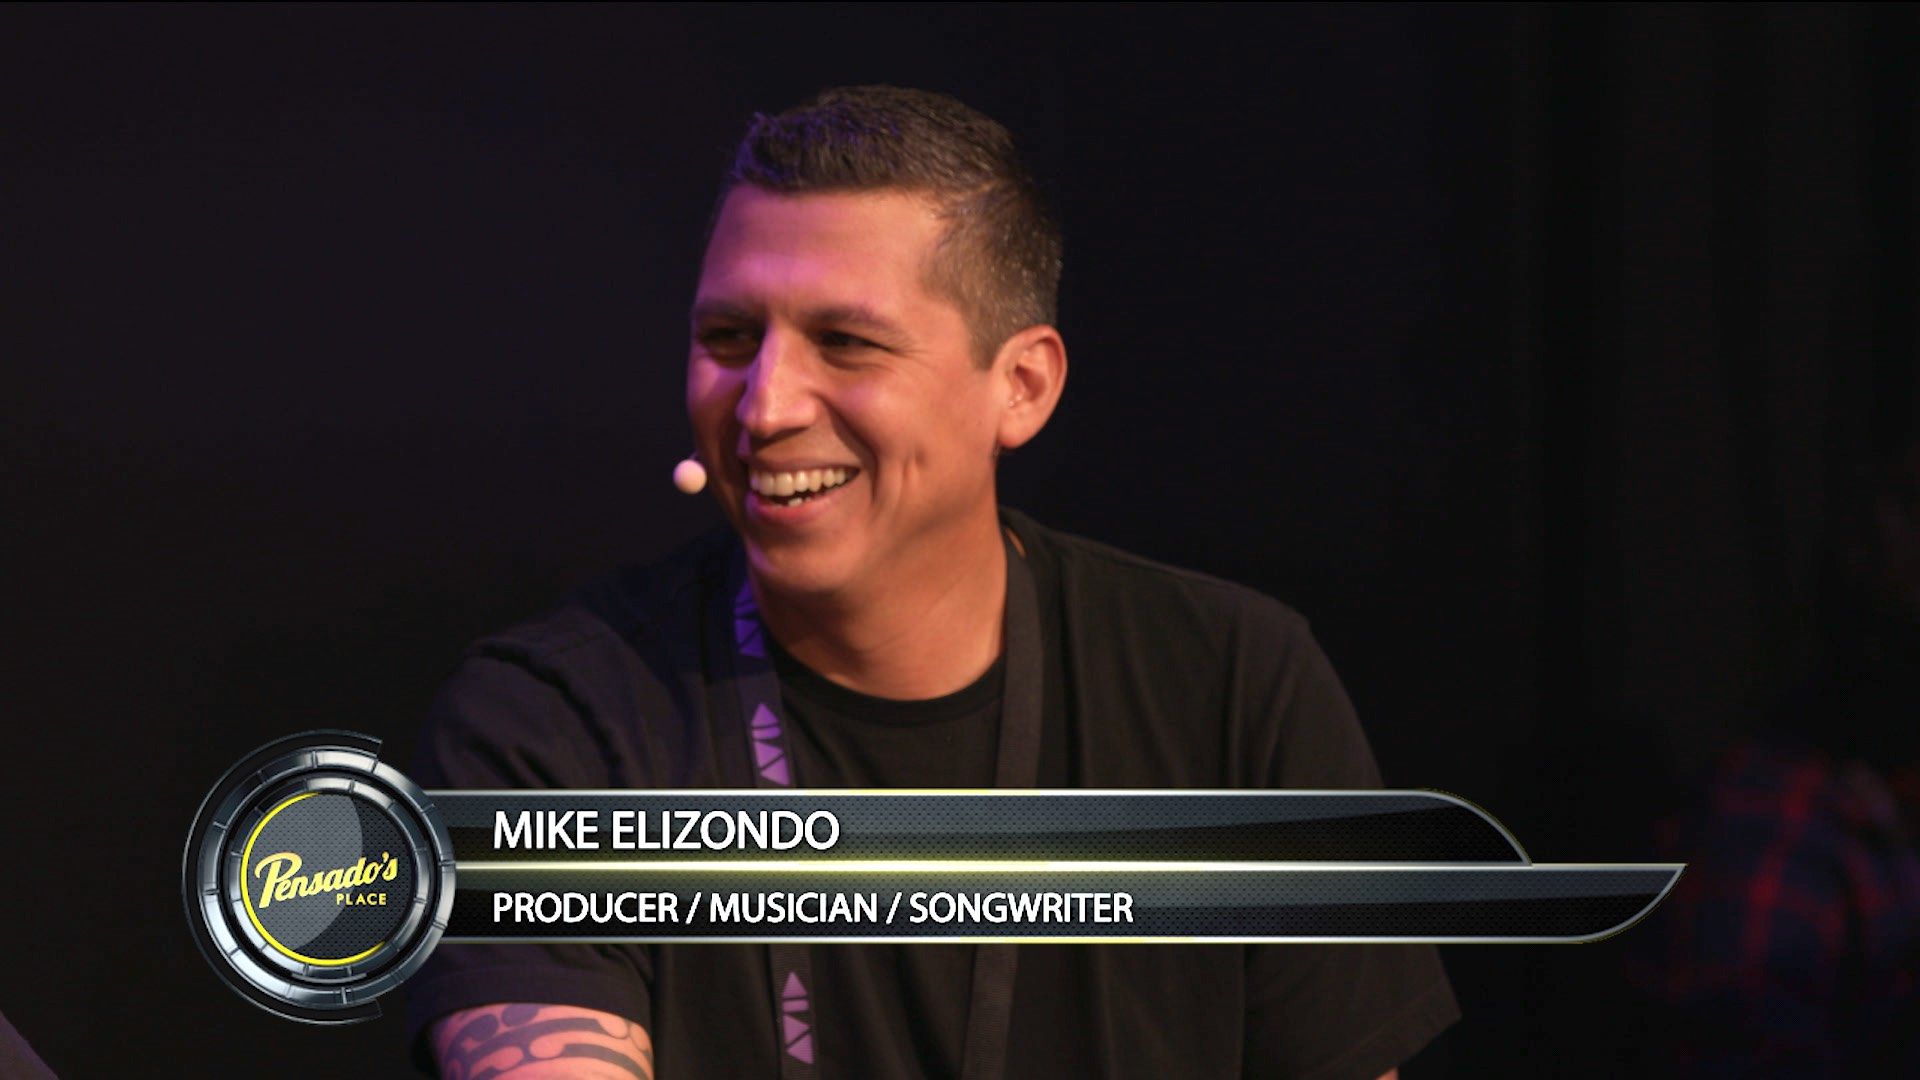 Producer/Songwriter Mike Elizondo